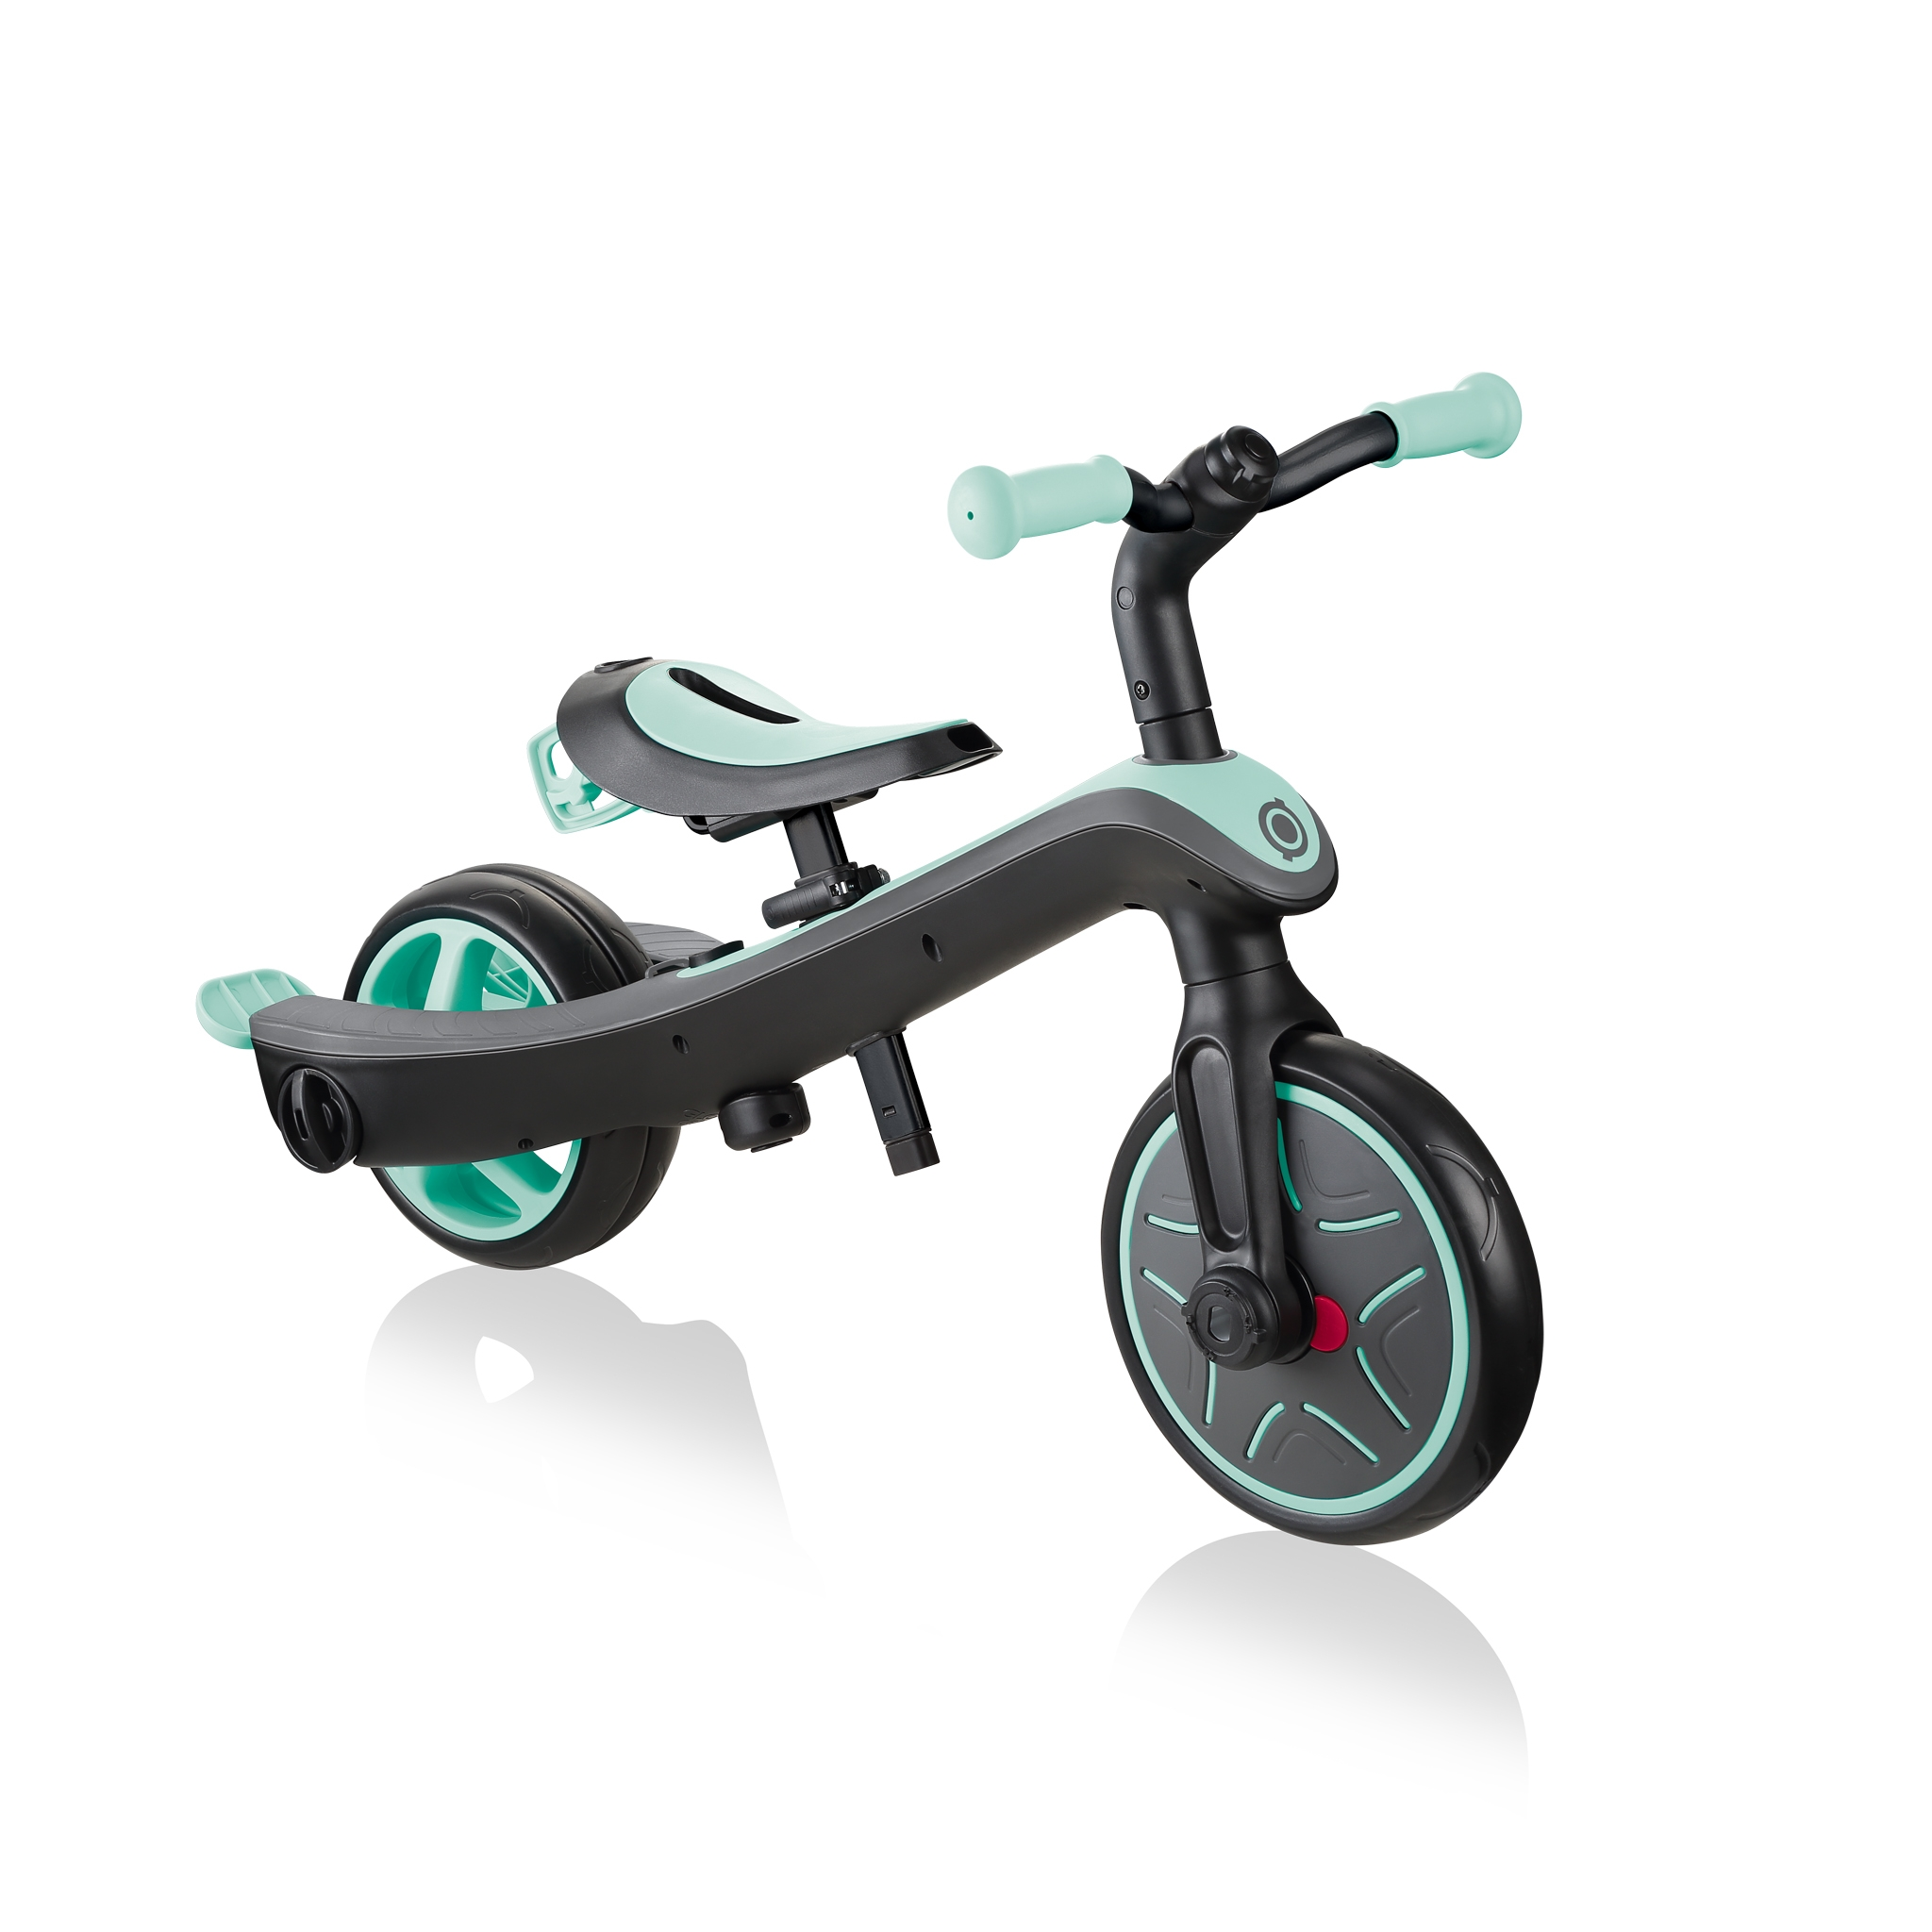 Globber-EXPLORER-TRIKE-4in1-all-in-one-baby-tricycle-and-kids-balance-bike-stage4-balance-bike_mint